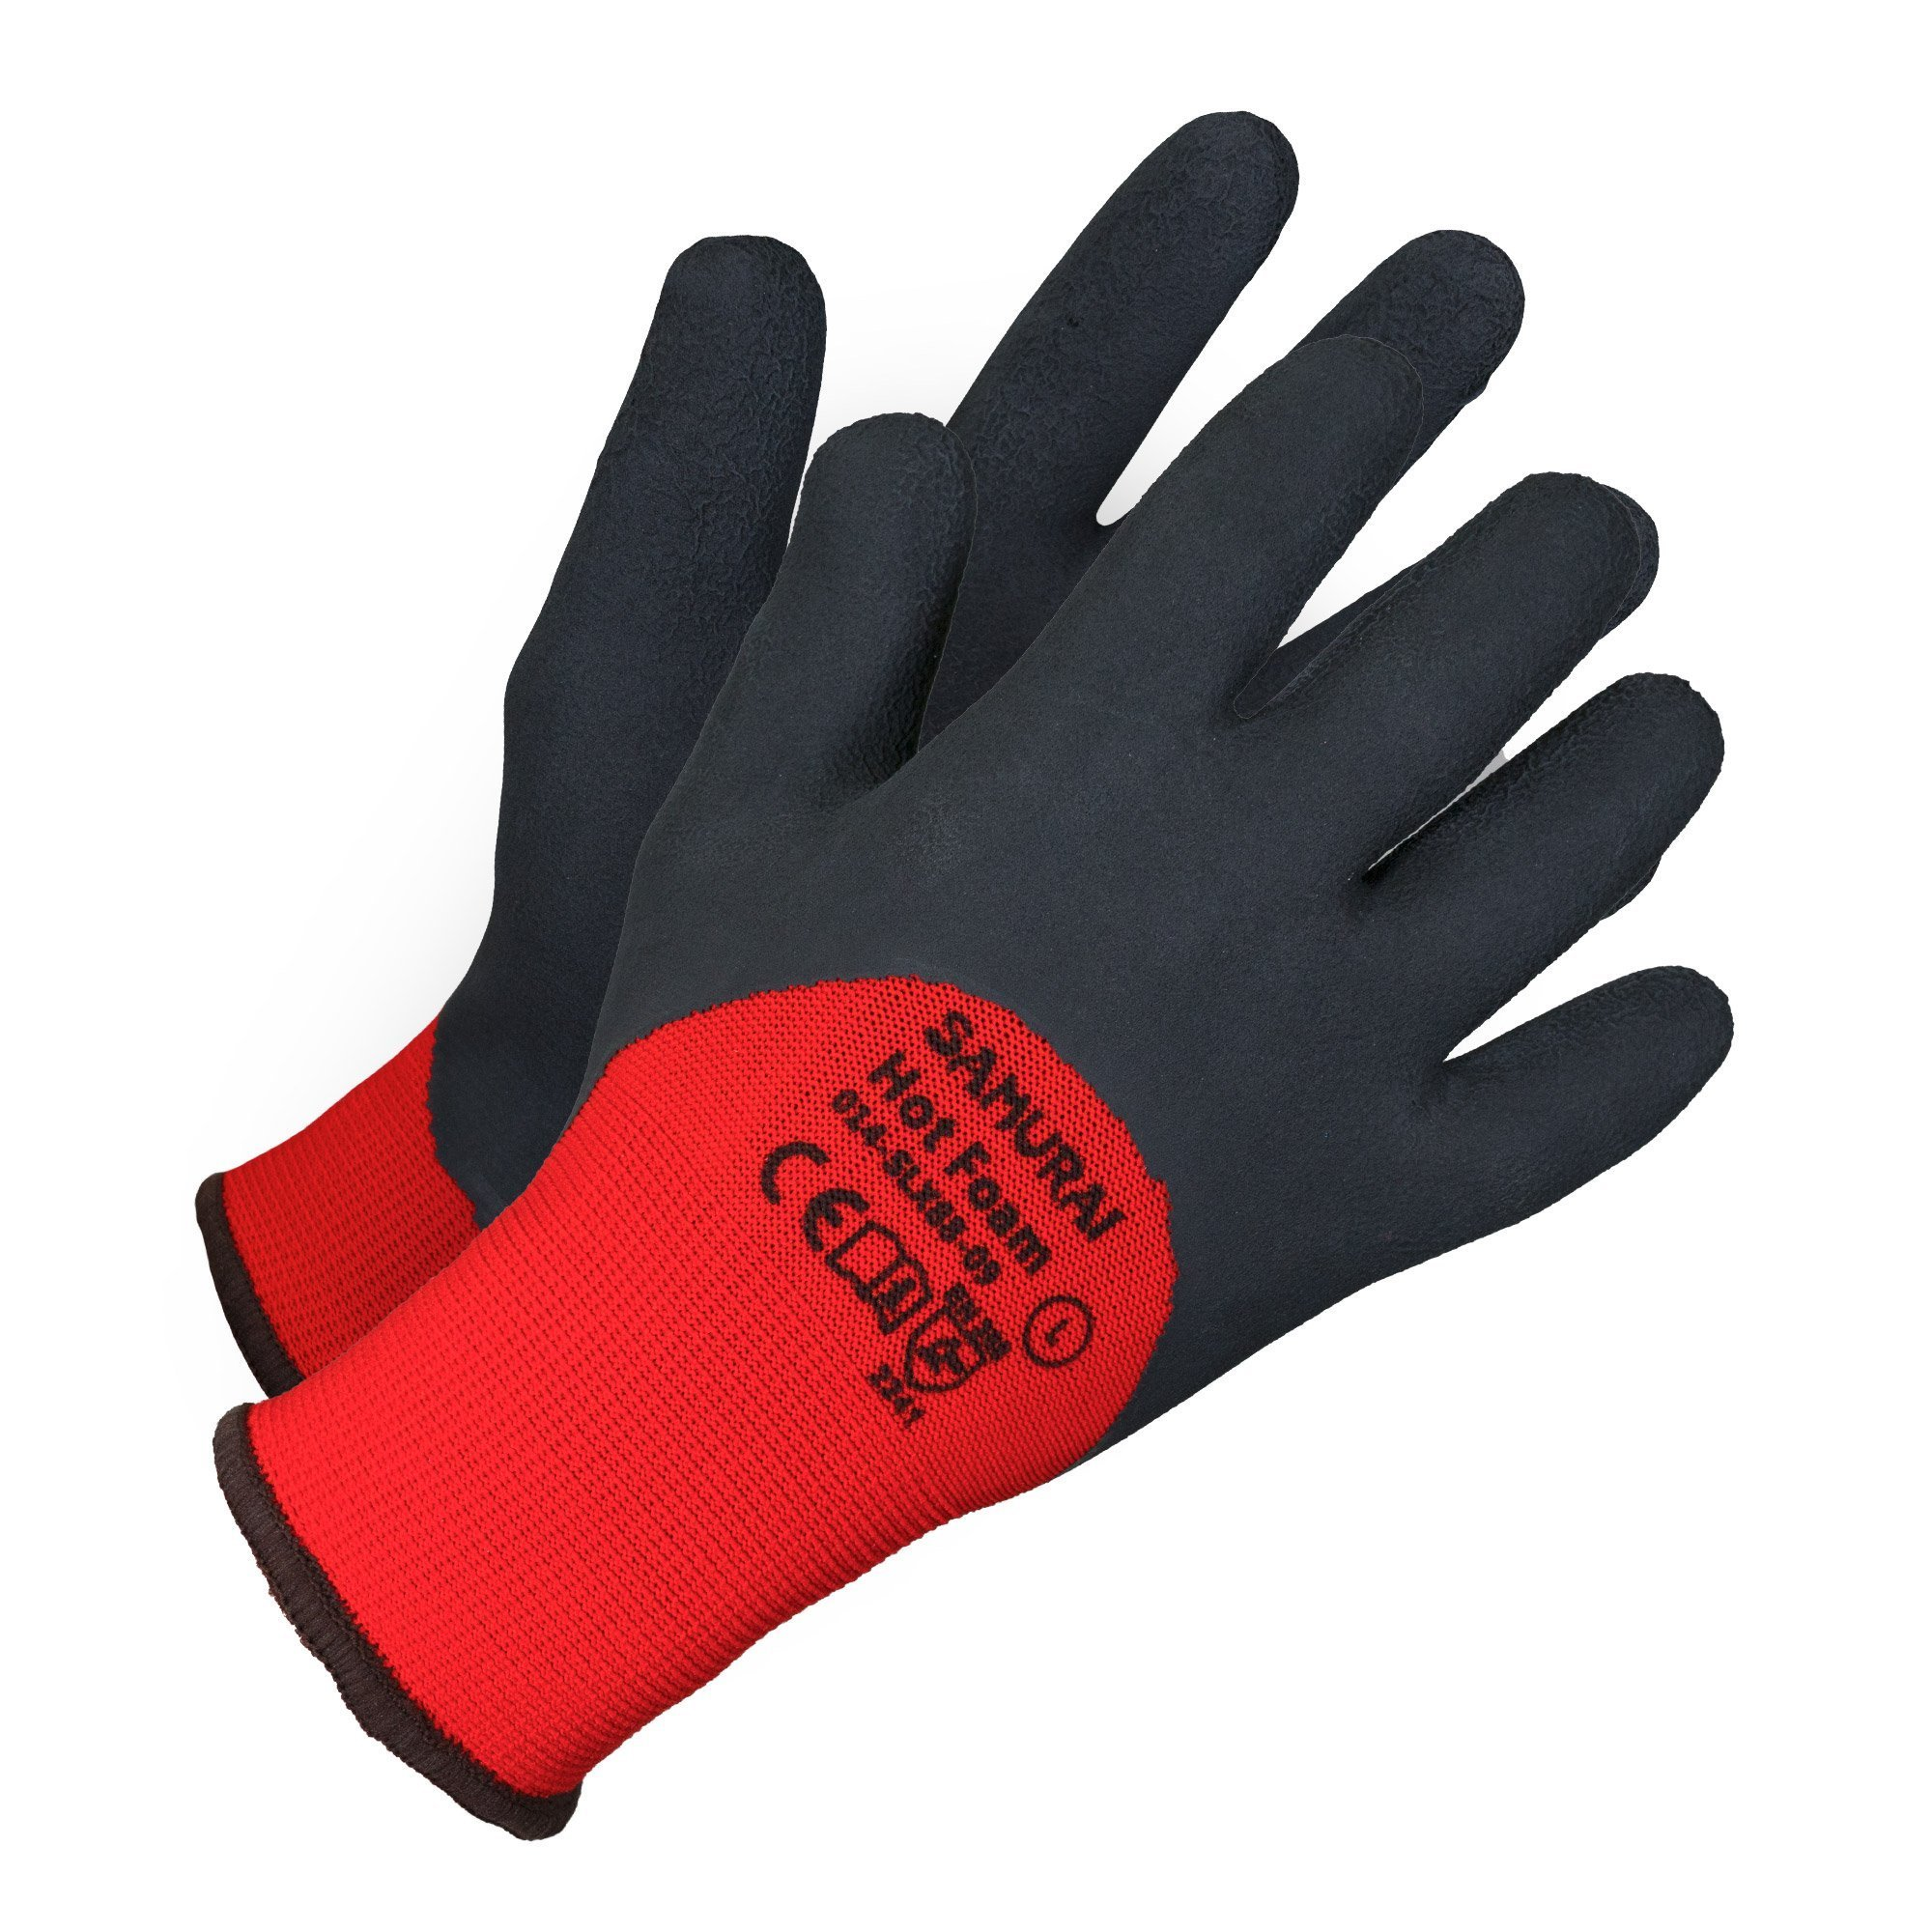 Gloves - Samurai Hot Foam - Insulated - Red - Small